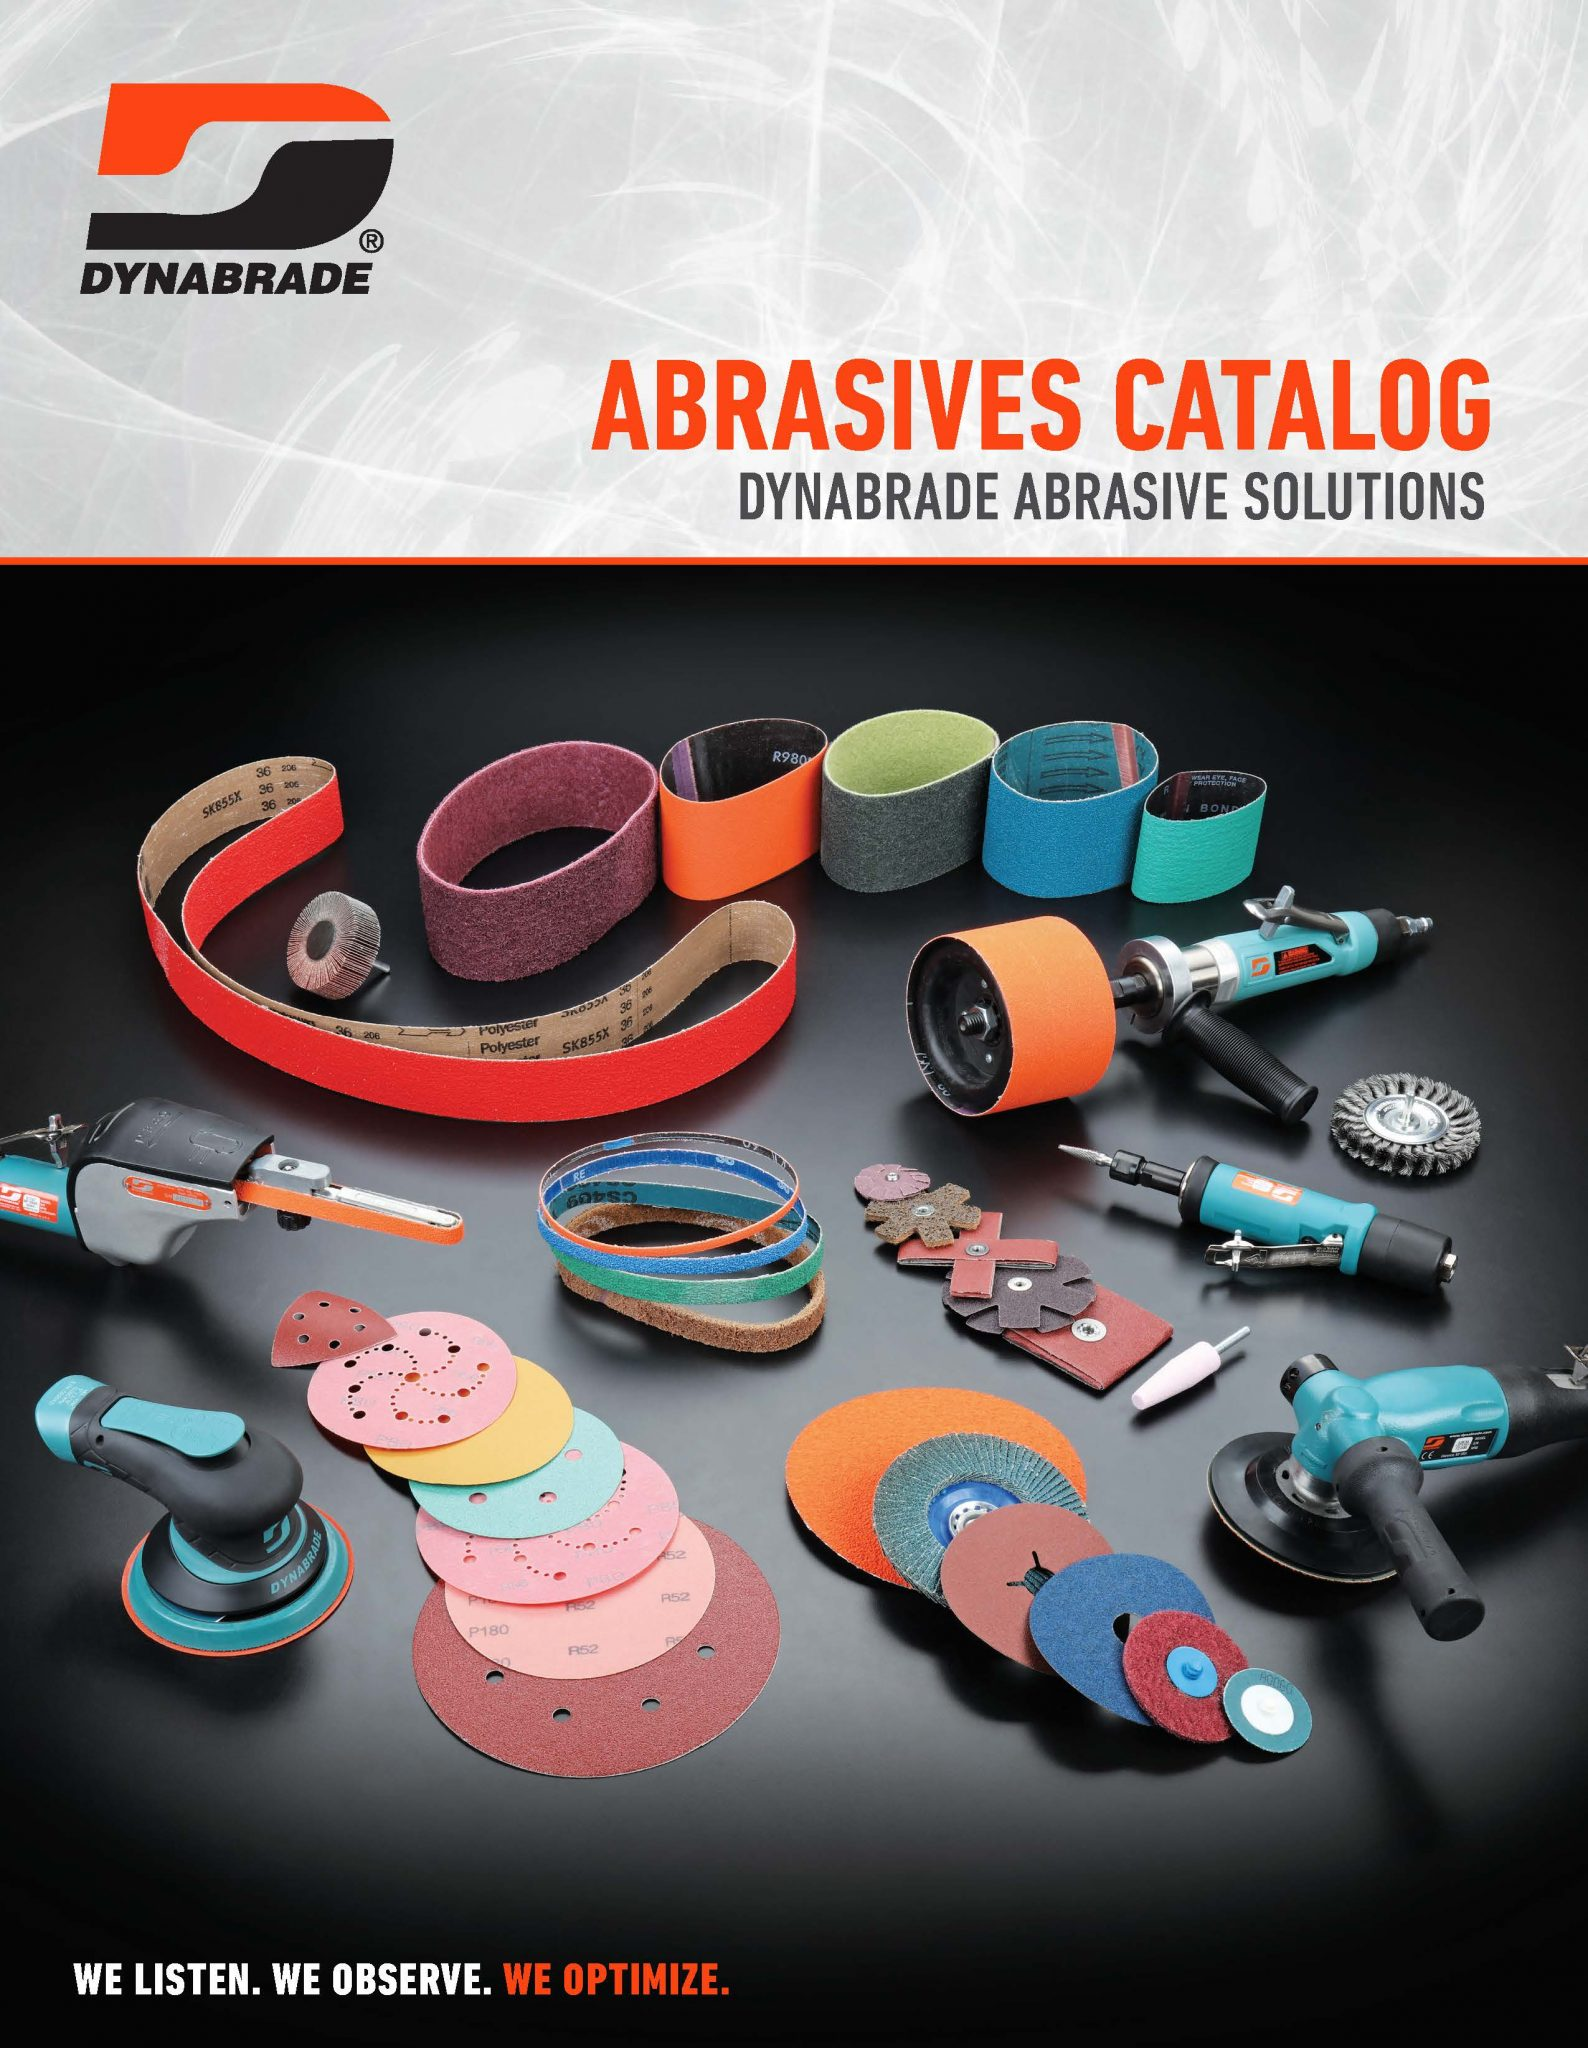 Dynabrade Introduces New Abrasive Catalog Featuring